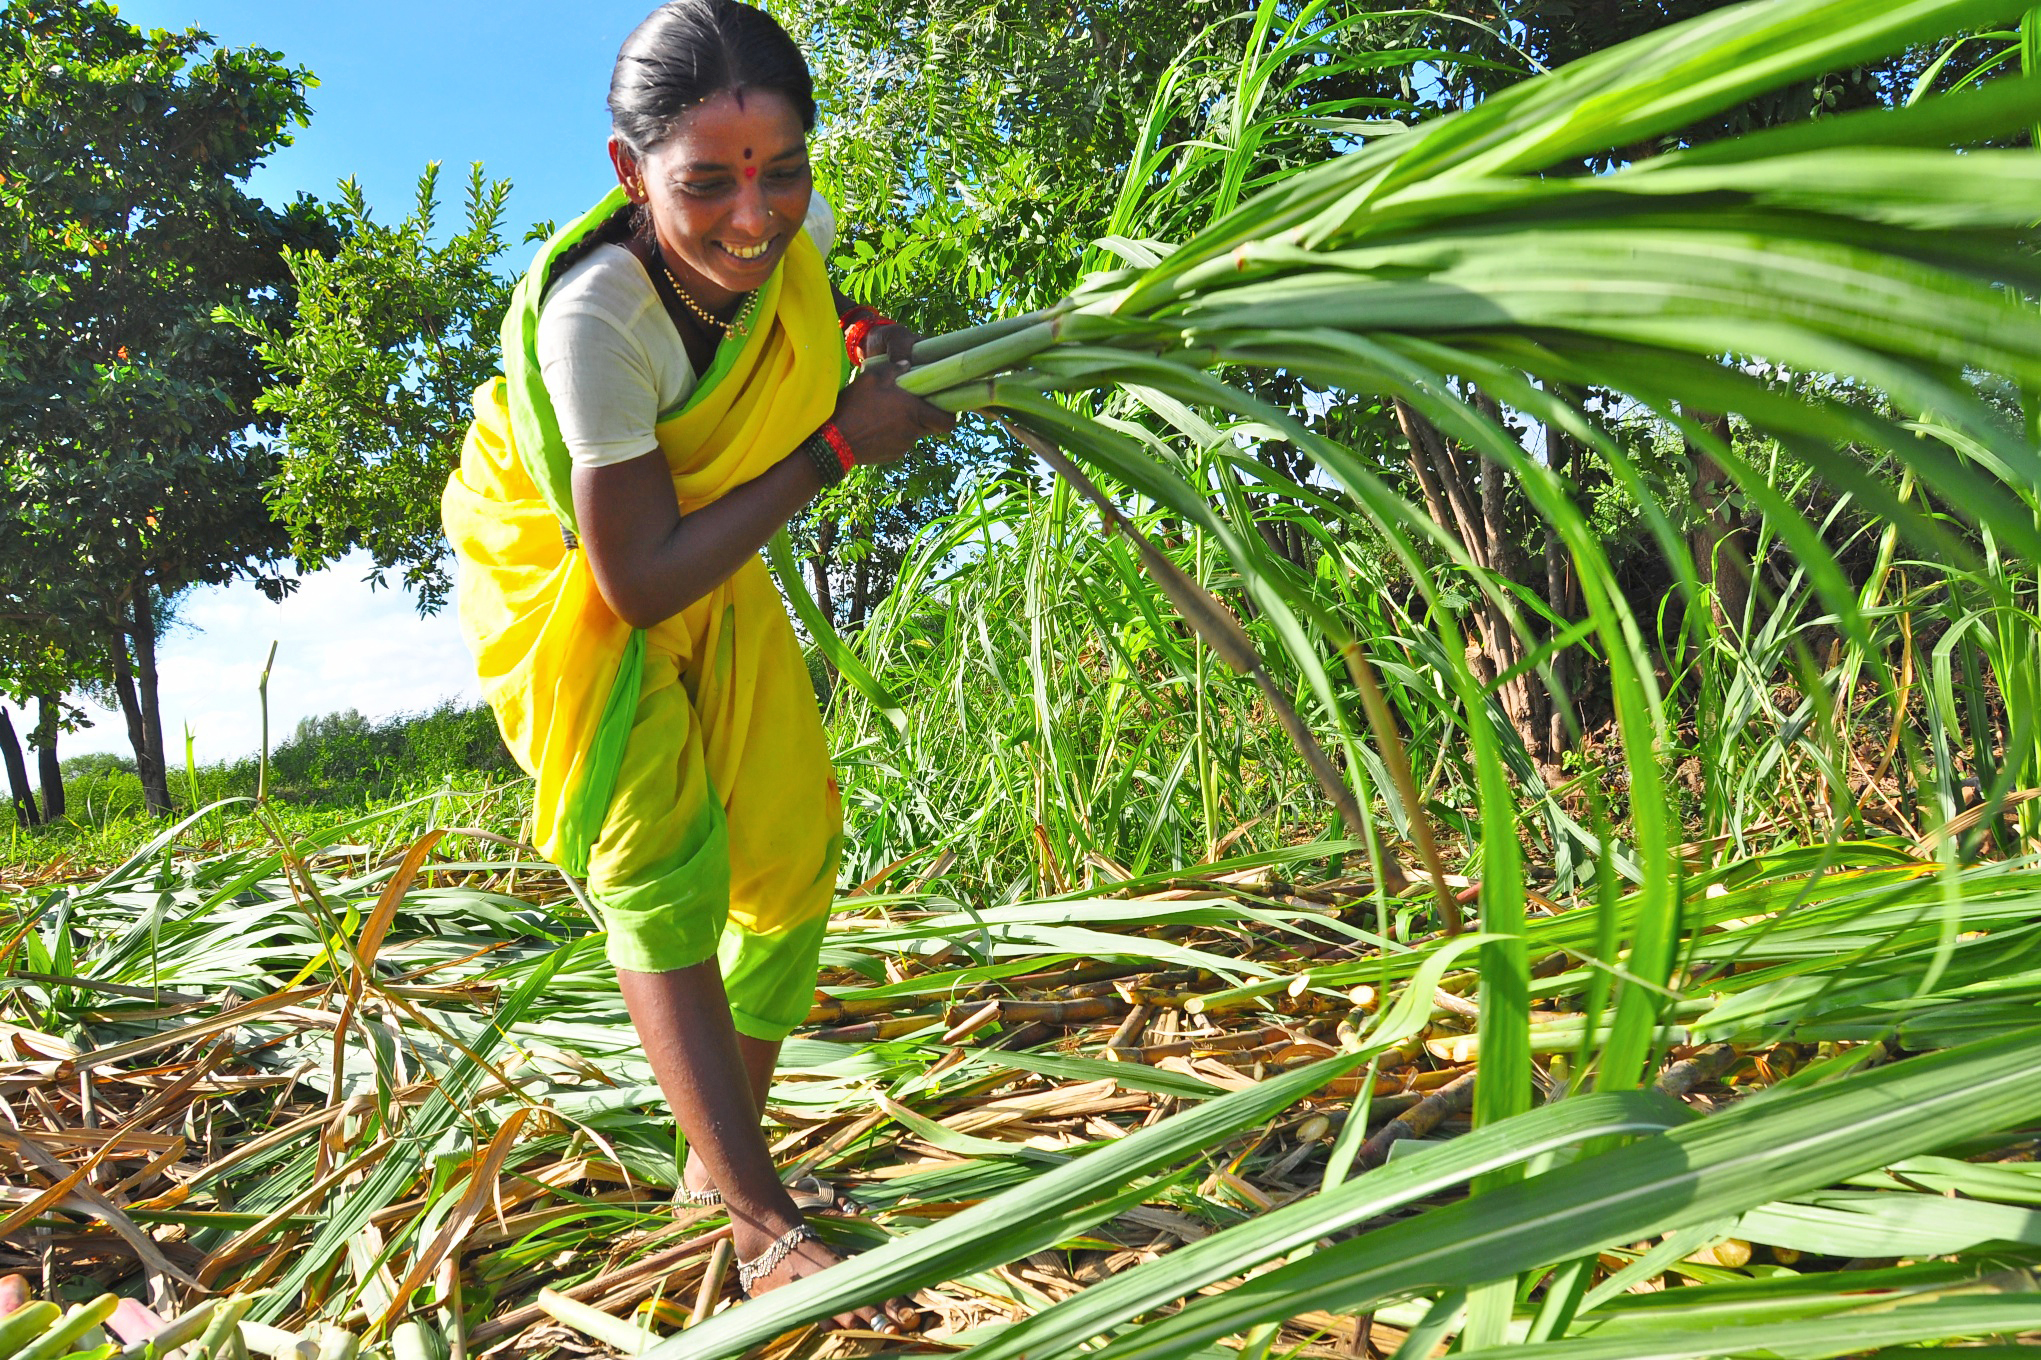 A woman gathers fodder from her agroforestry system. Image from www.swissaid.ch